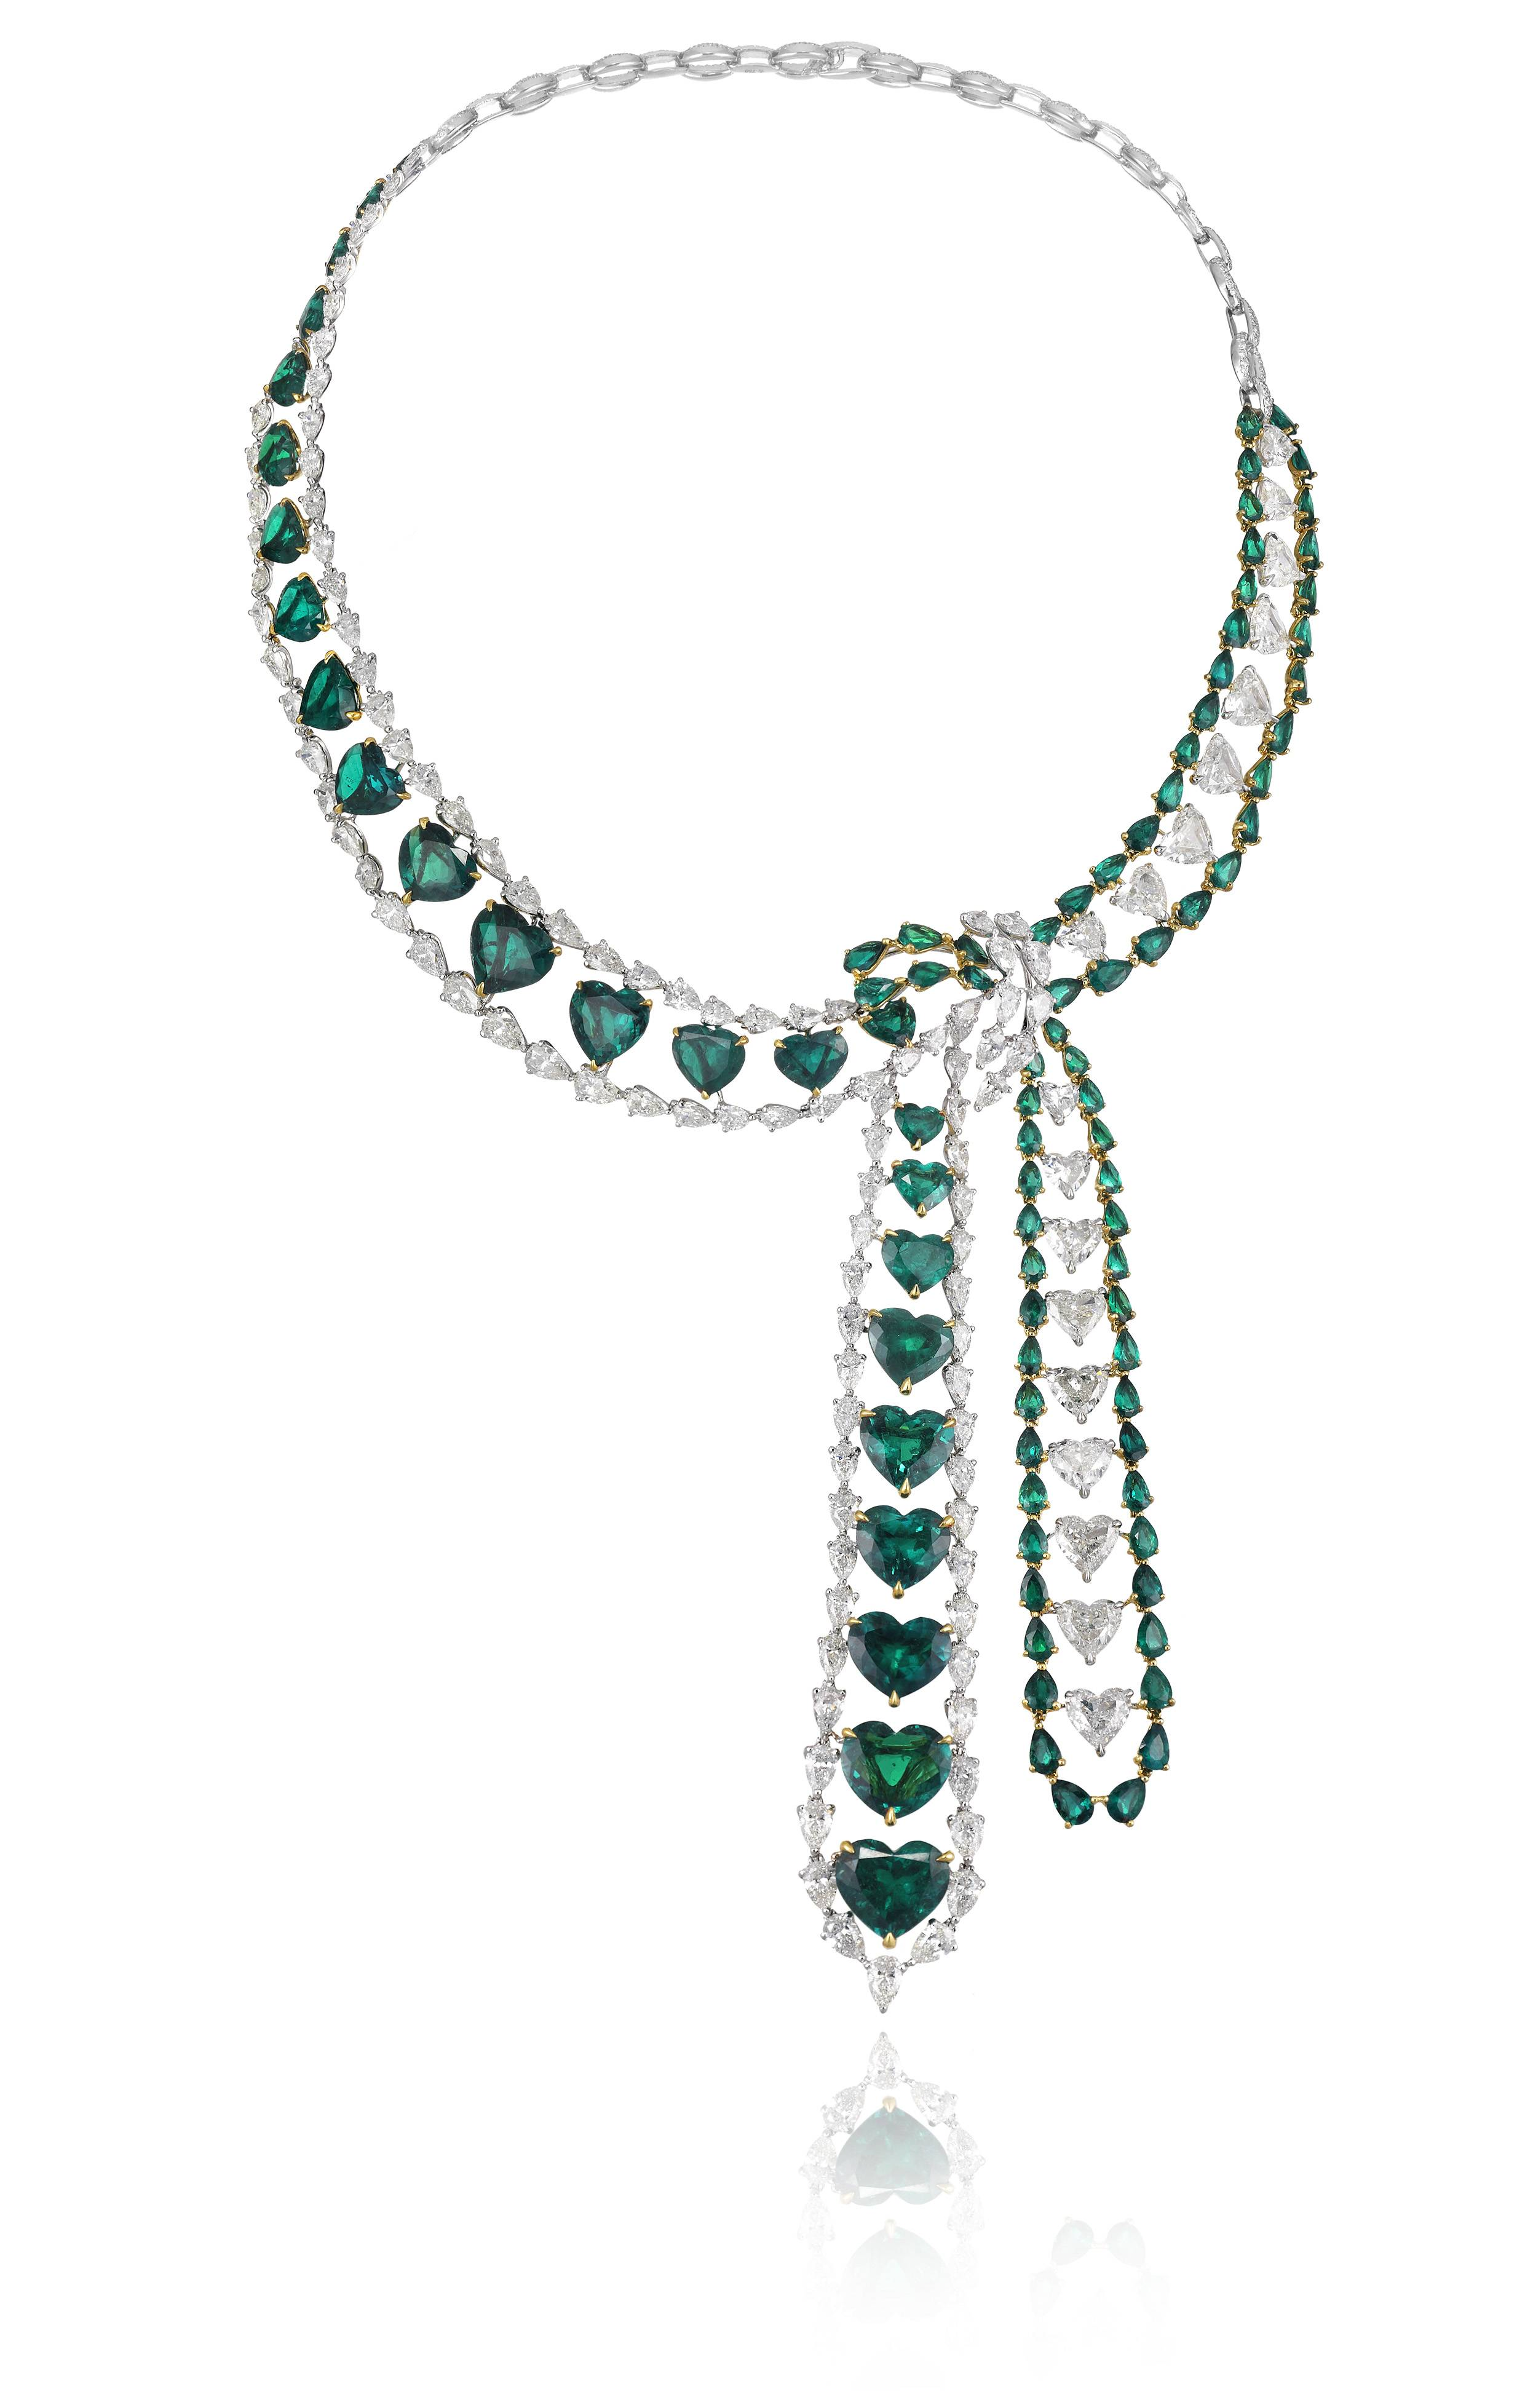 937889-9001 Hearth Emerald Necklace Red Carpet Collection